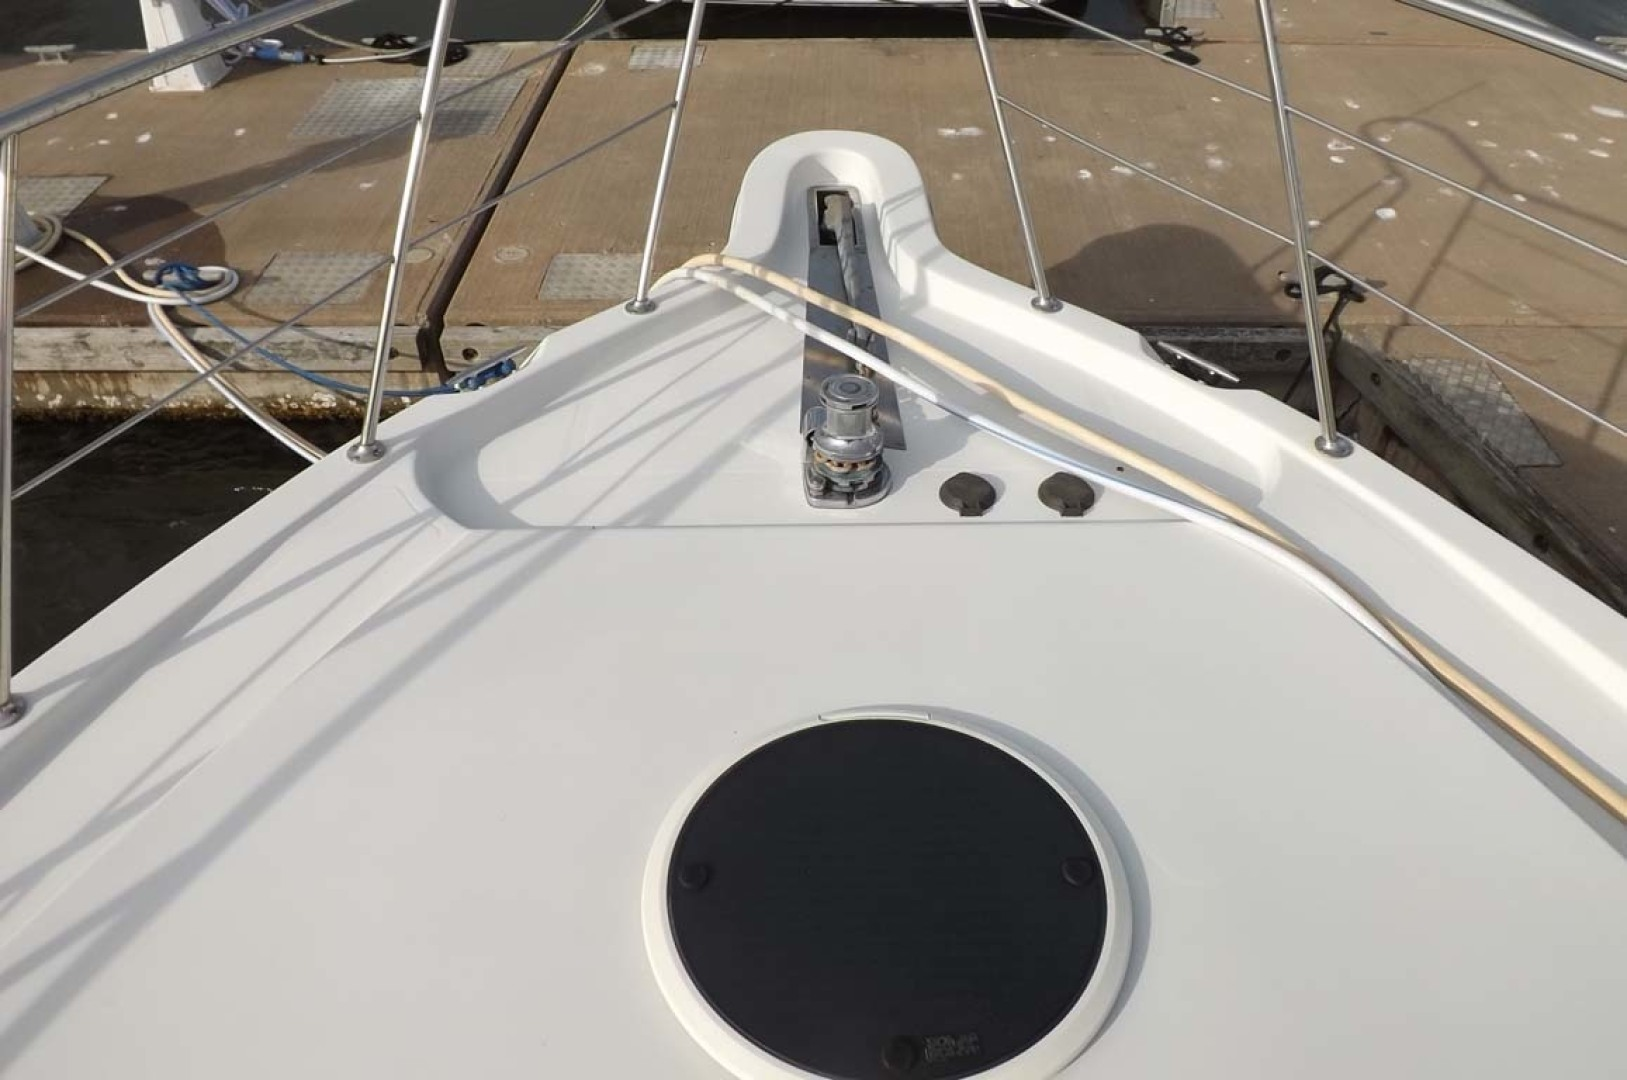 Bluewater Yachts-5200 2006 -Mount Pleasant-South Carolina-United States-Bow, Foredeck-1412959 | Thumbnail